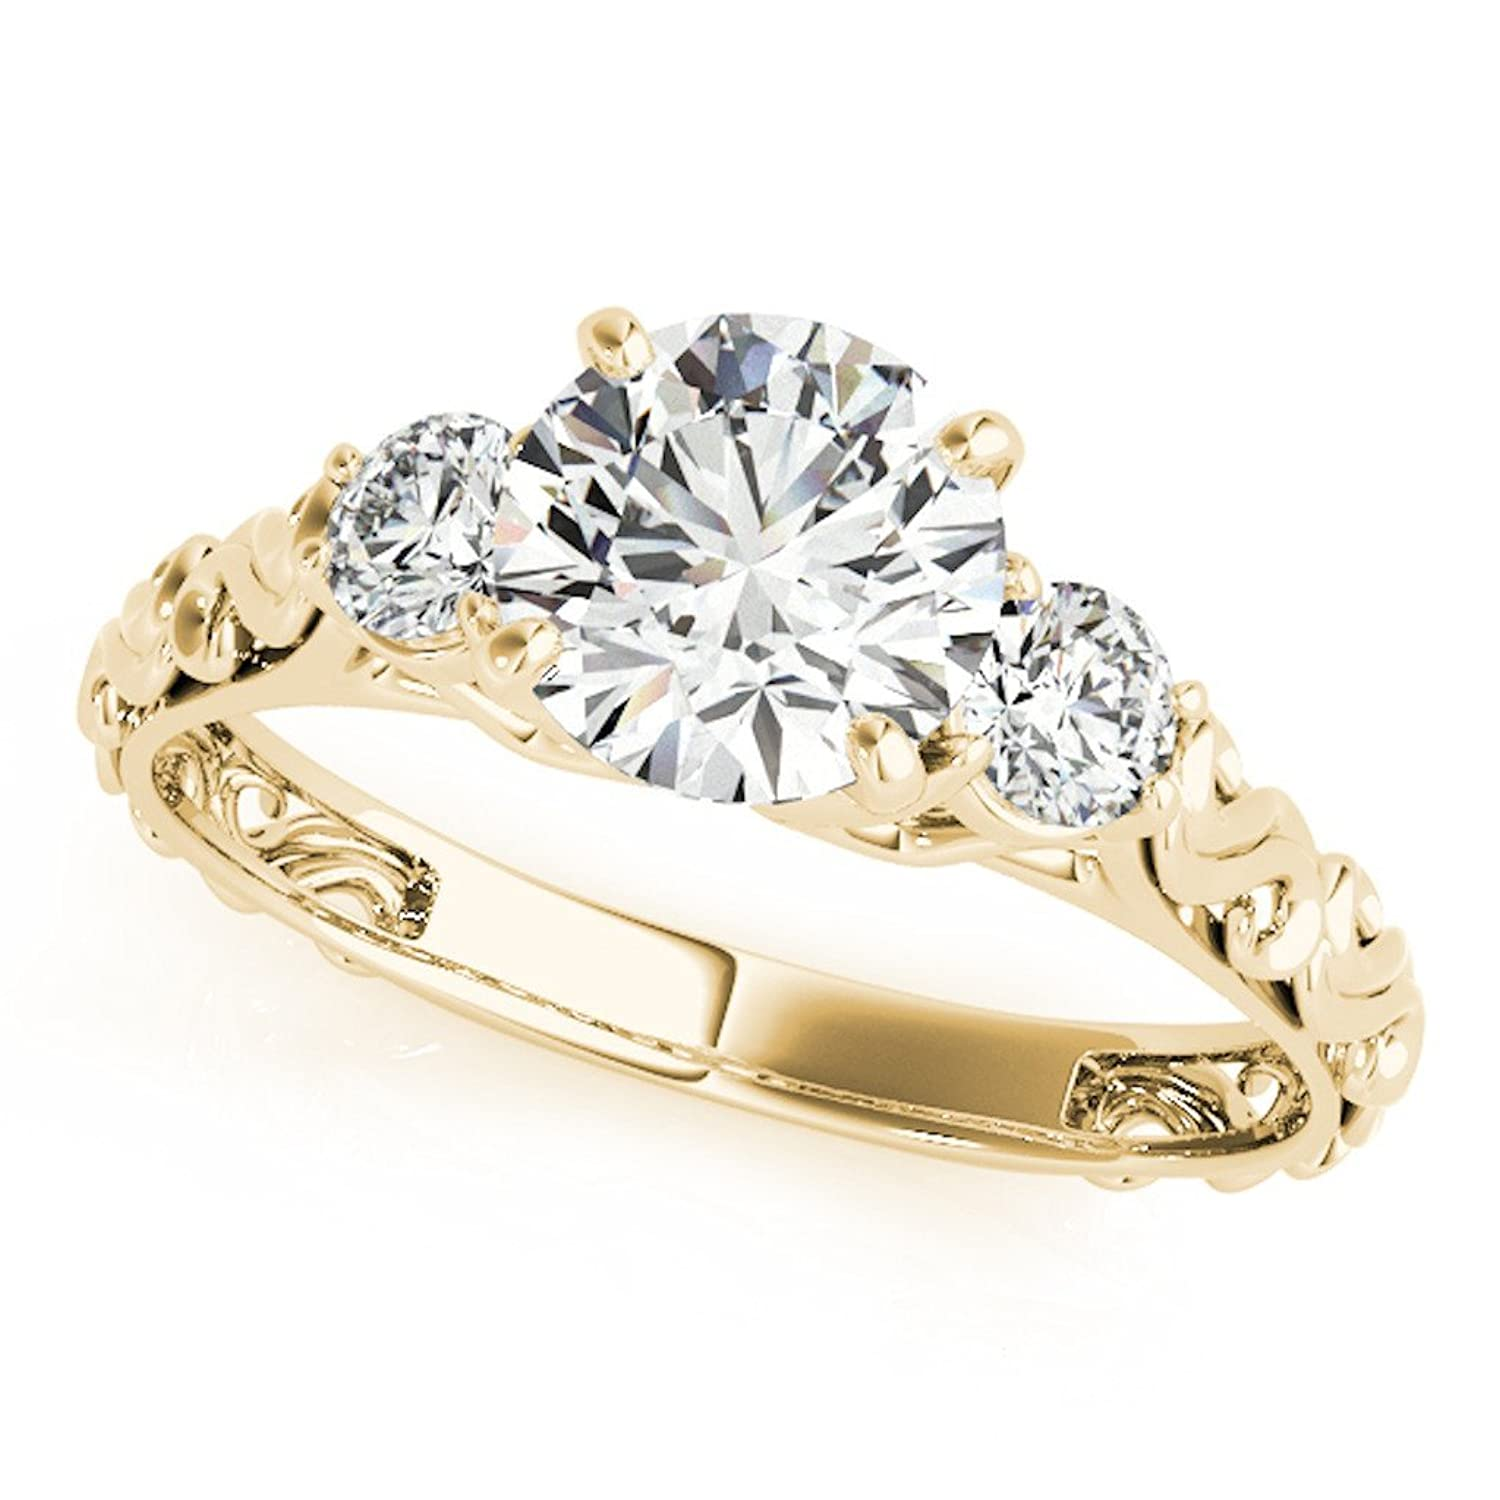 1 2 carat halo engagement ring crafted in 14k